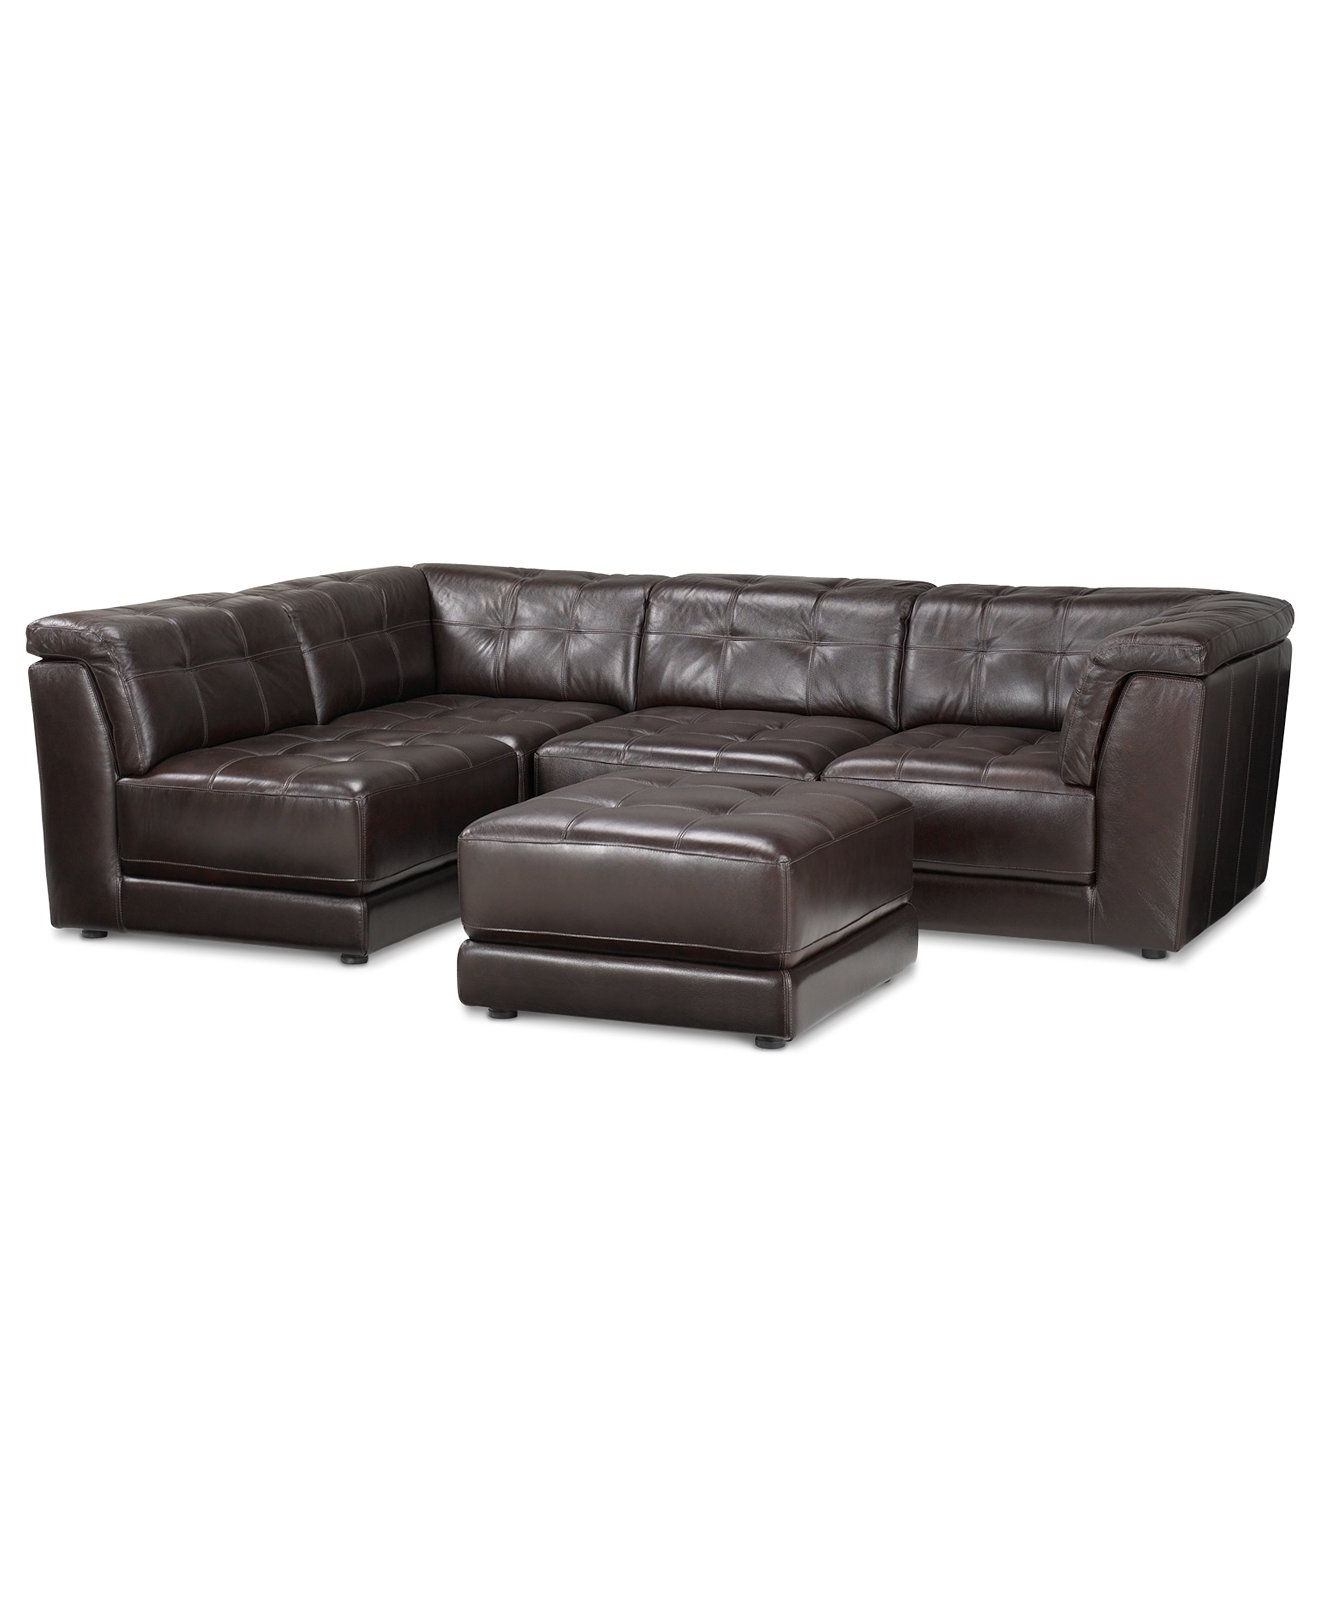 Stacey Leather Sectional Sofa, 5 Piece Modular Pit (2 Armless With Regard To Fashionable Macys Leather Sectional Sofas (View 17 of 20)